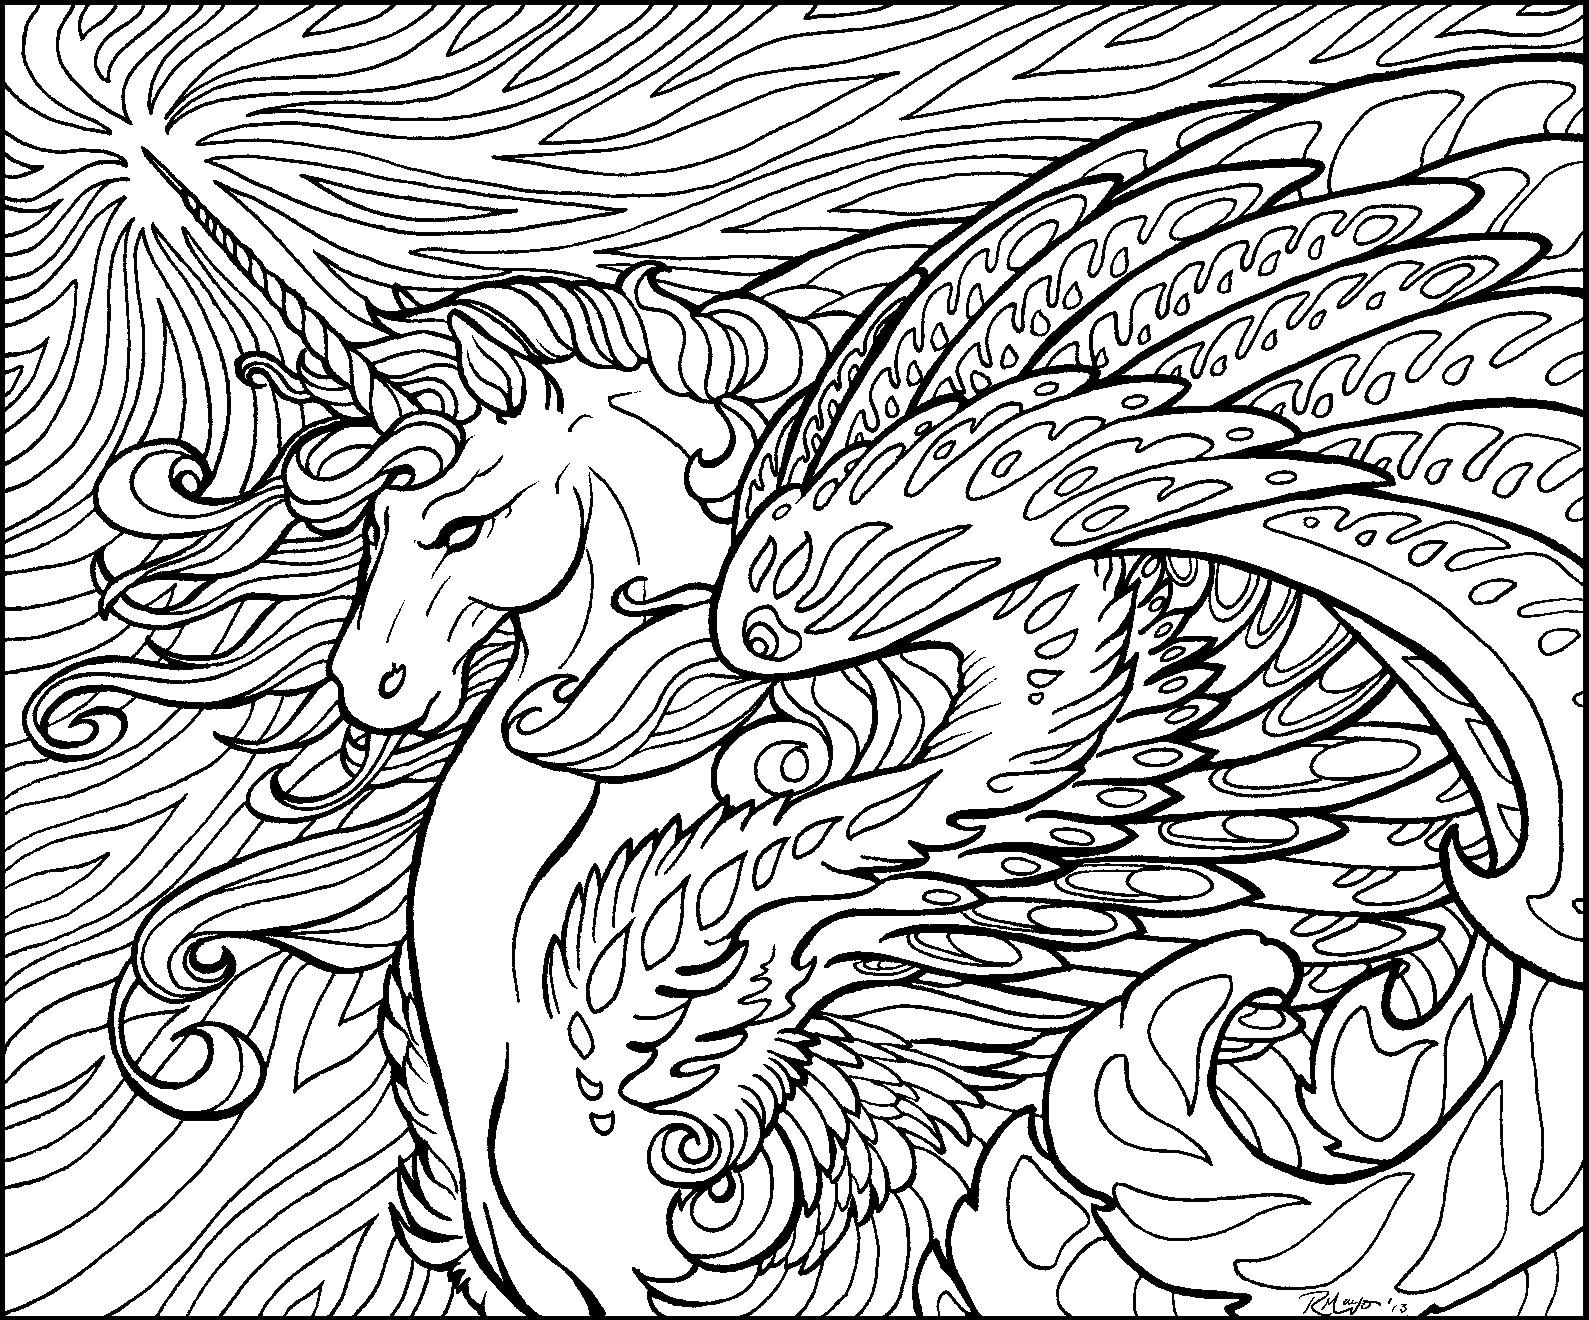 Hard Coloring Pages For Adults Max Coloring Horse Coloring Pages Dragon Coloring Page Animal Coloring Pages